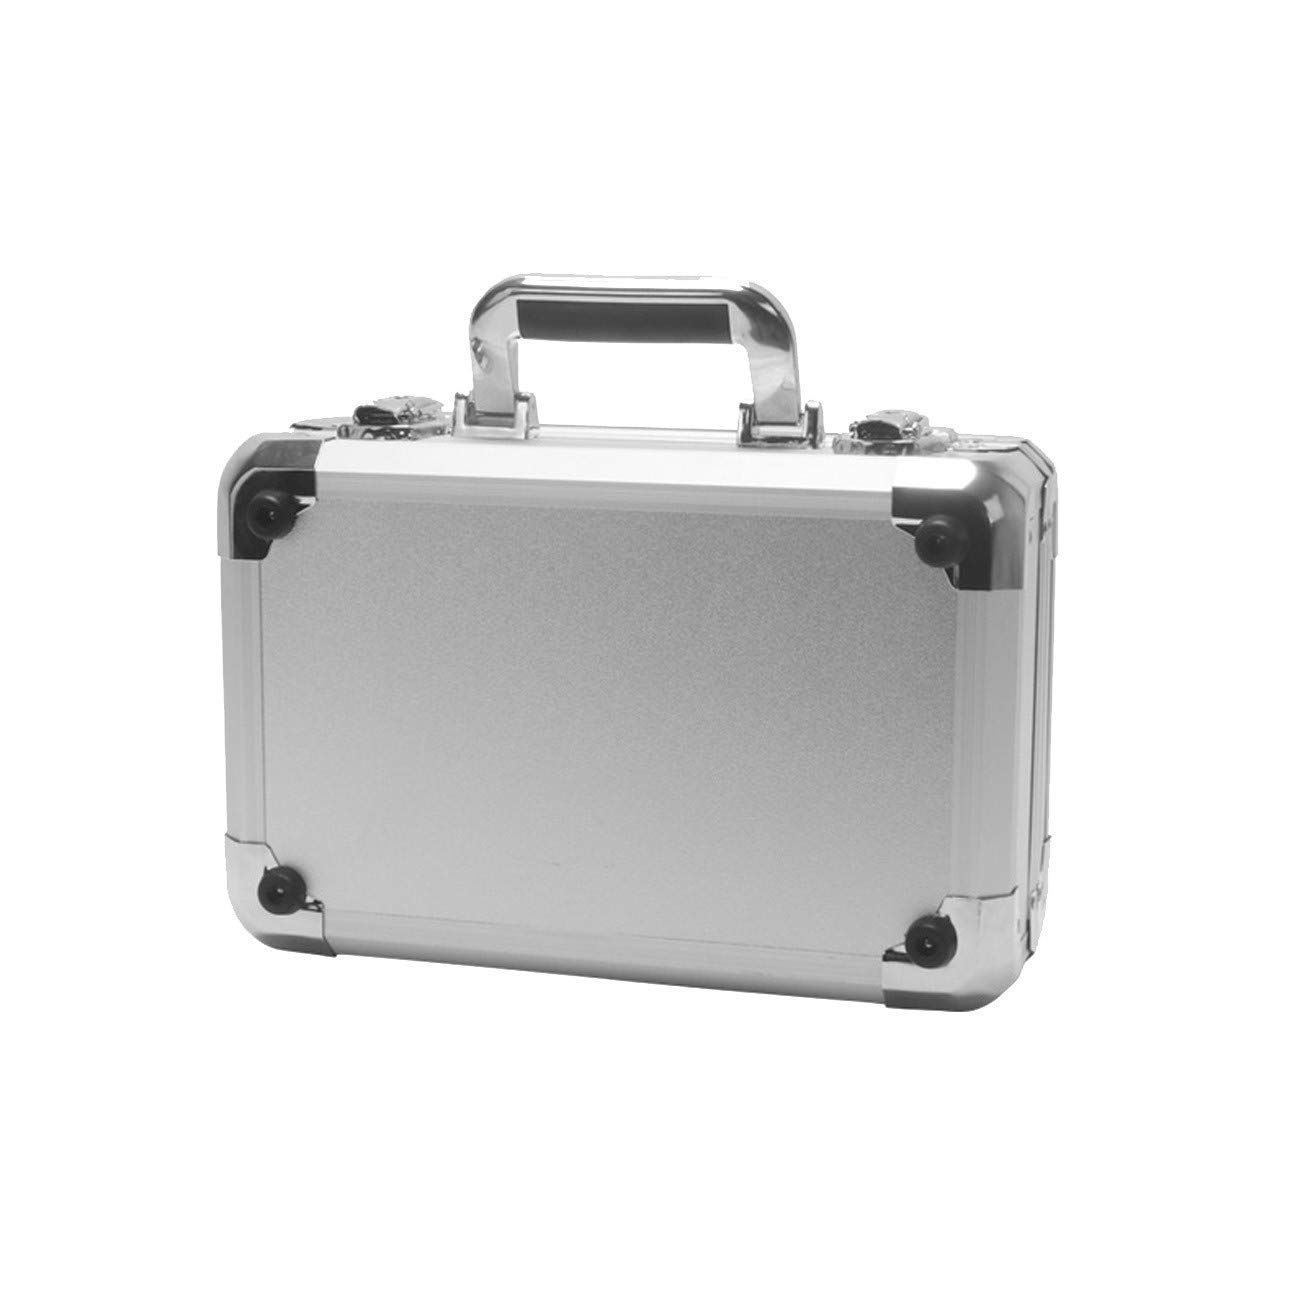 DDLmax Carrying Case Aluminum Hard Travel Protect Case for SJRC F11 by DDLmax (Image #2)